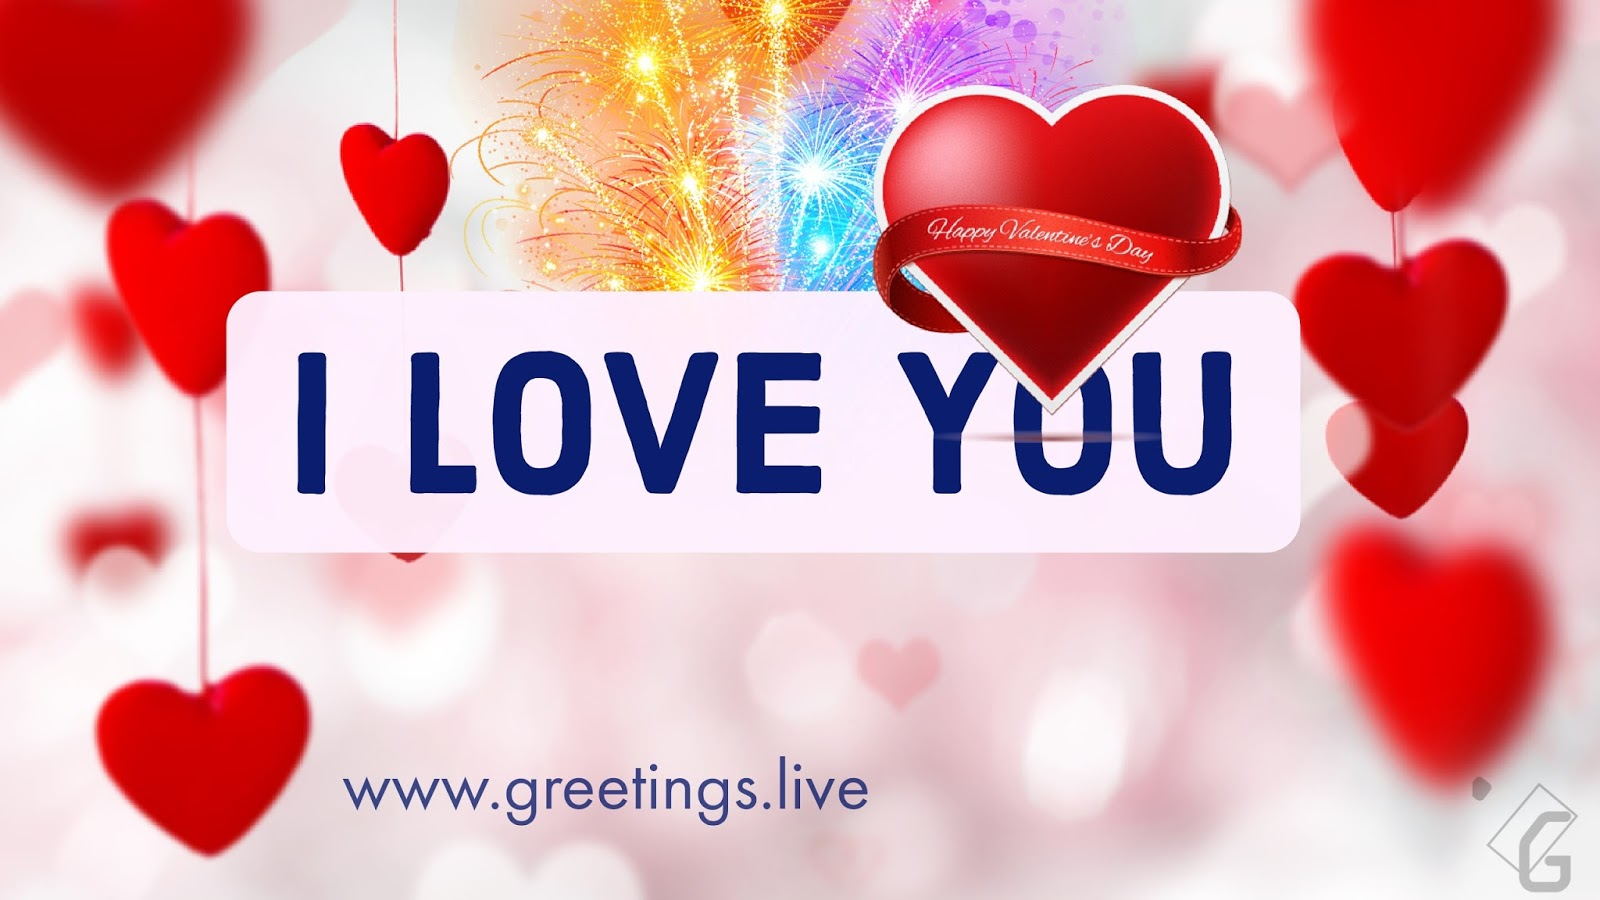 Greetingsve hd images love smile birthday wishes free download i i love you messages on valentines day greeting kristyandbryce Image collections